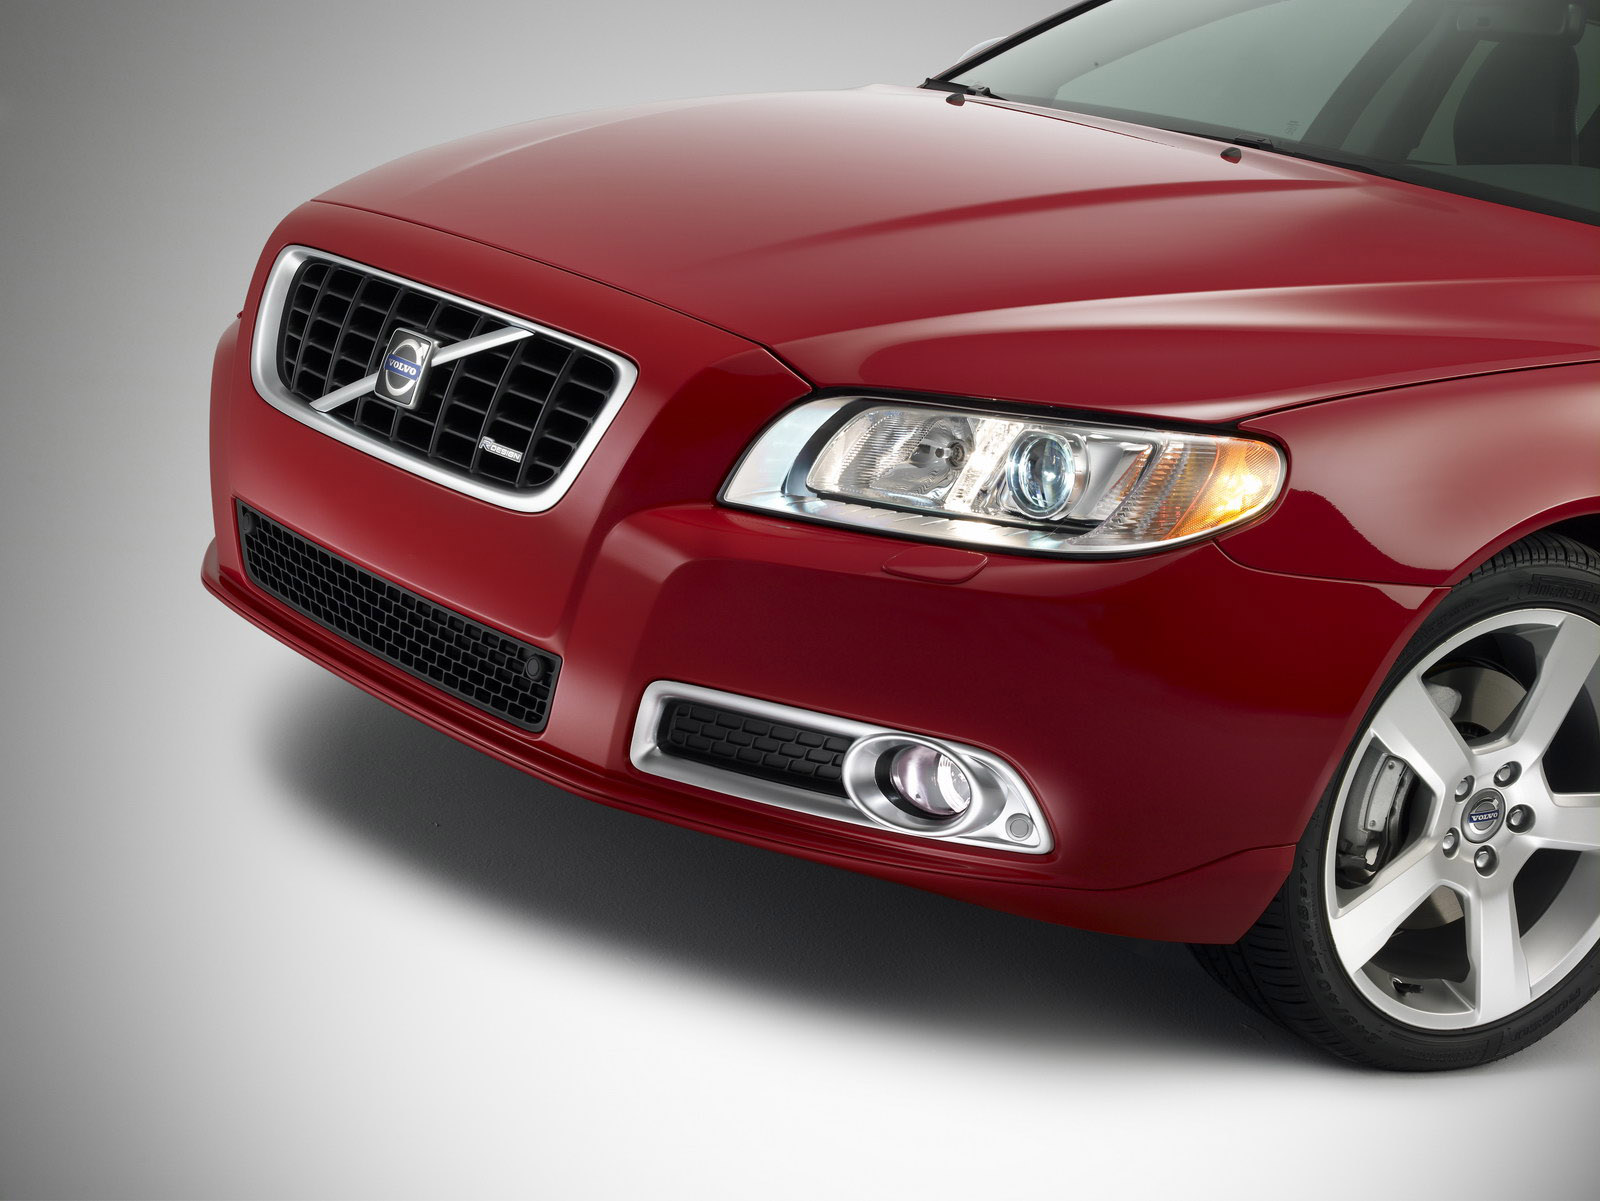 Volvo V70 R Design Loaded With Refined Options